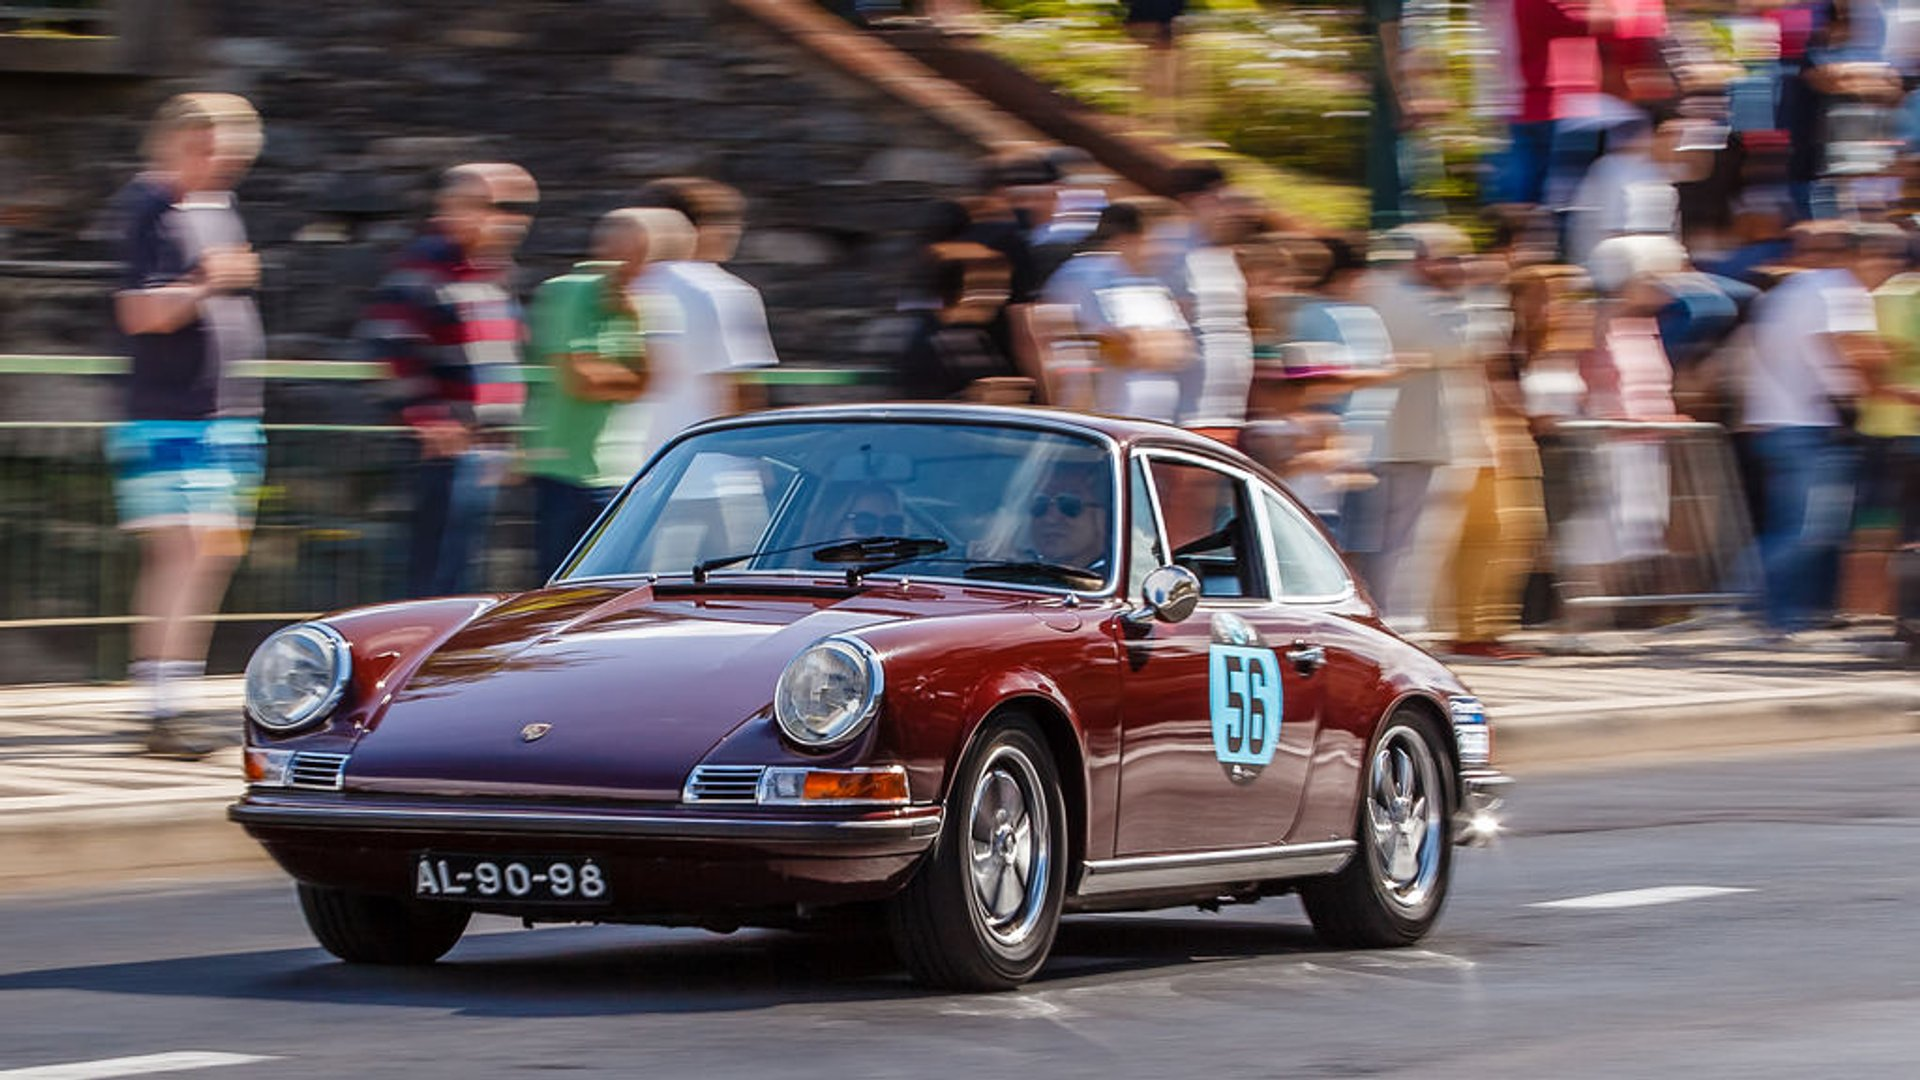 Funchal Classic Car Exhibition in Madeira 2019 - Best Time